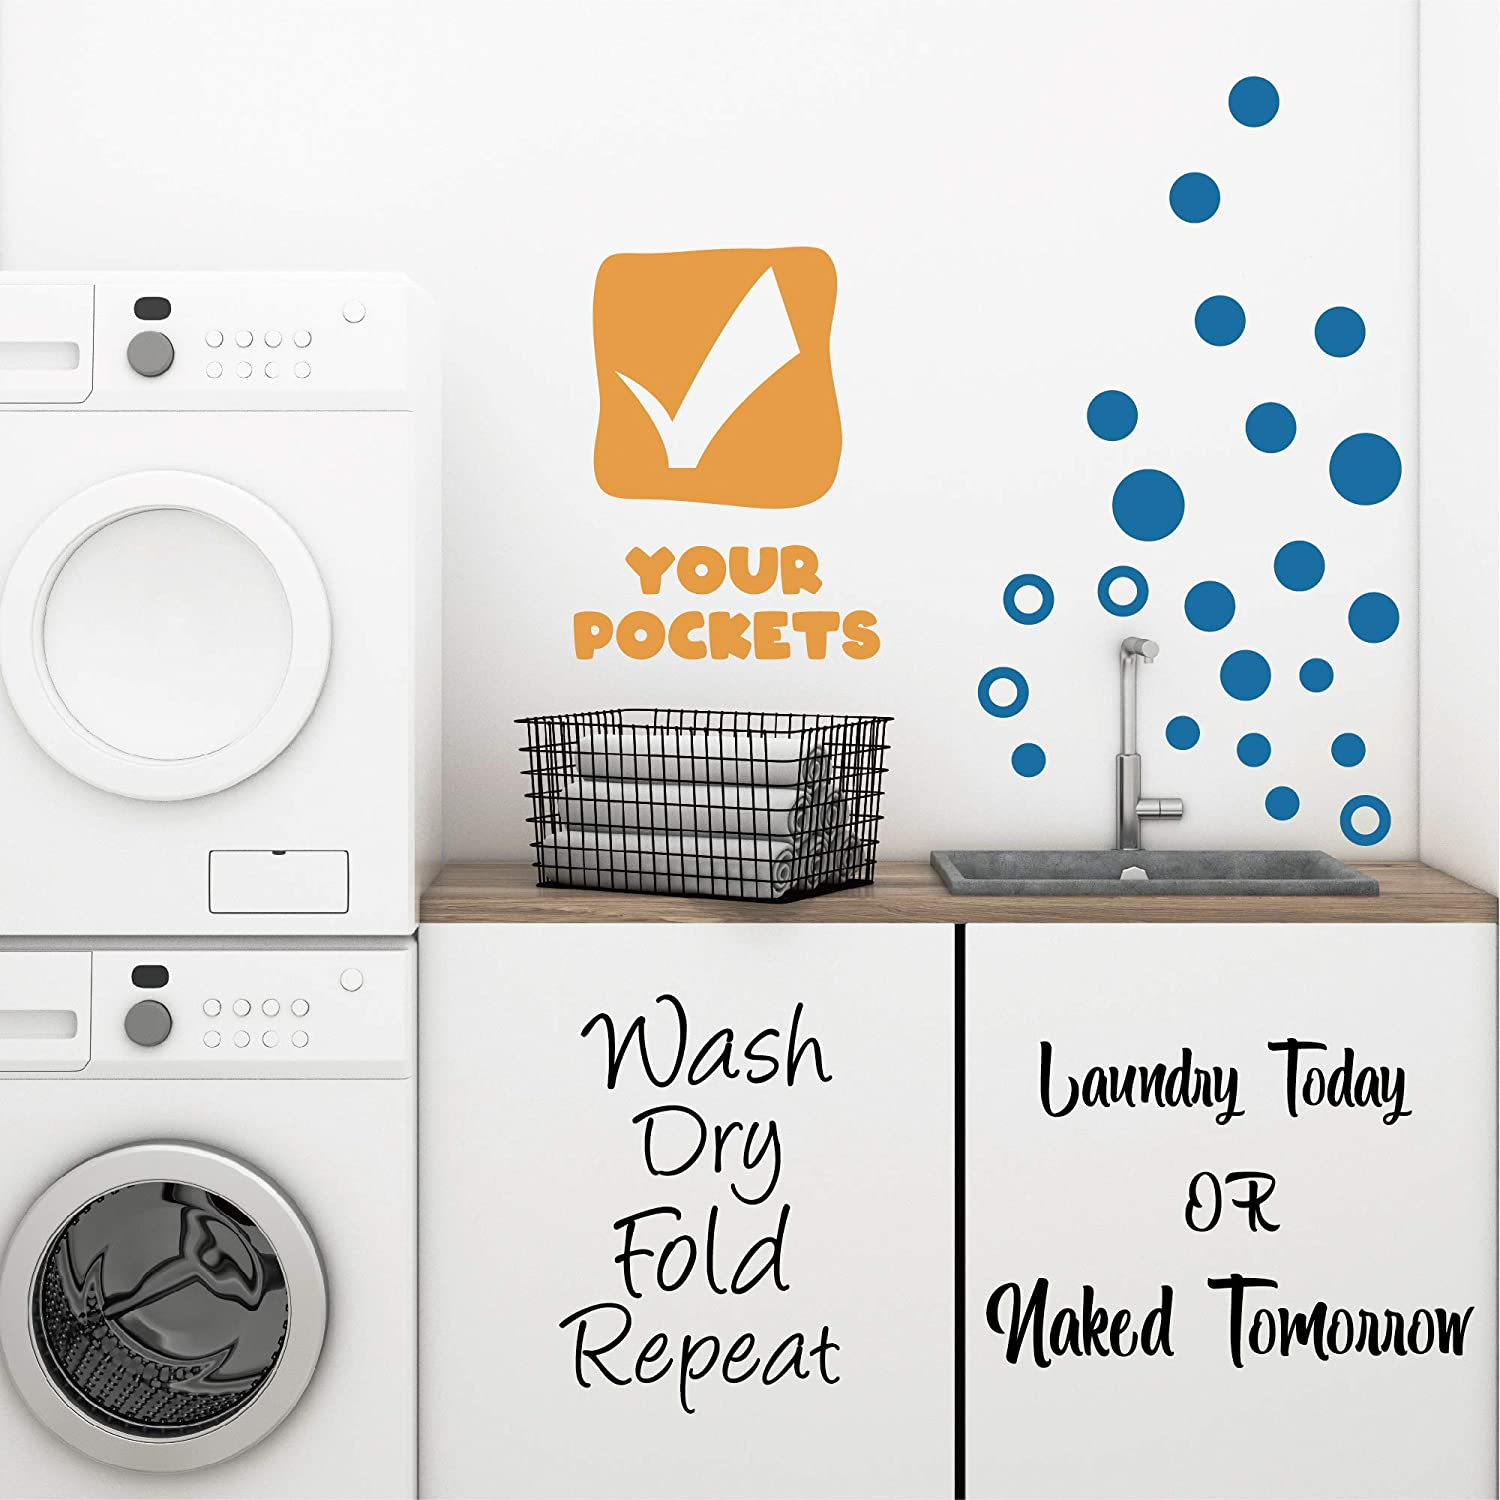 GULIGULI Laundry Today Or Naked Tomorrow-Wash Dry Fold Repeat-Check Your Pockets-Bubbles Vinyl Quotes Laundry Wall Stickers Decals-Set of 4